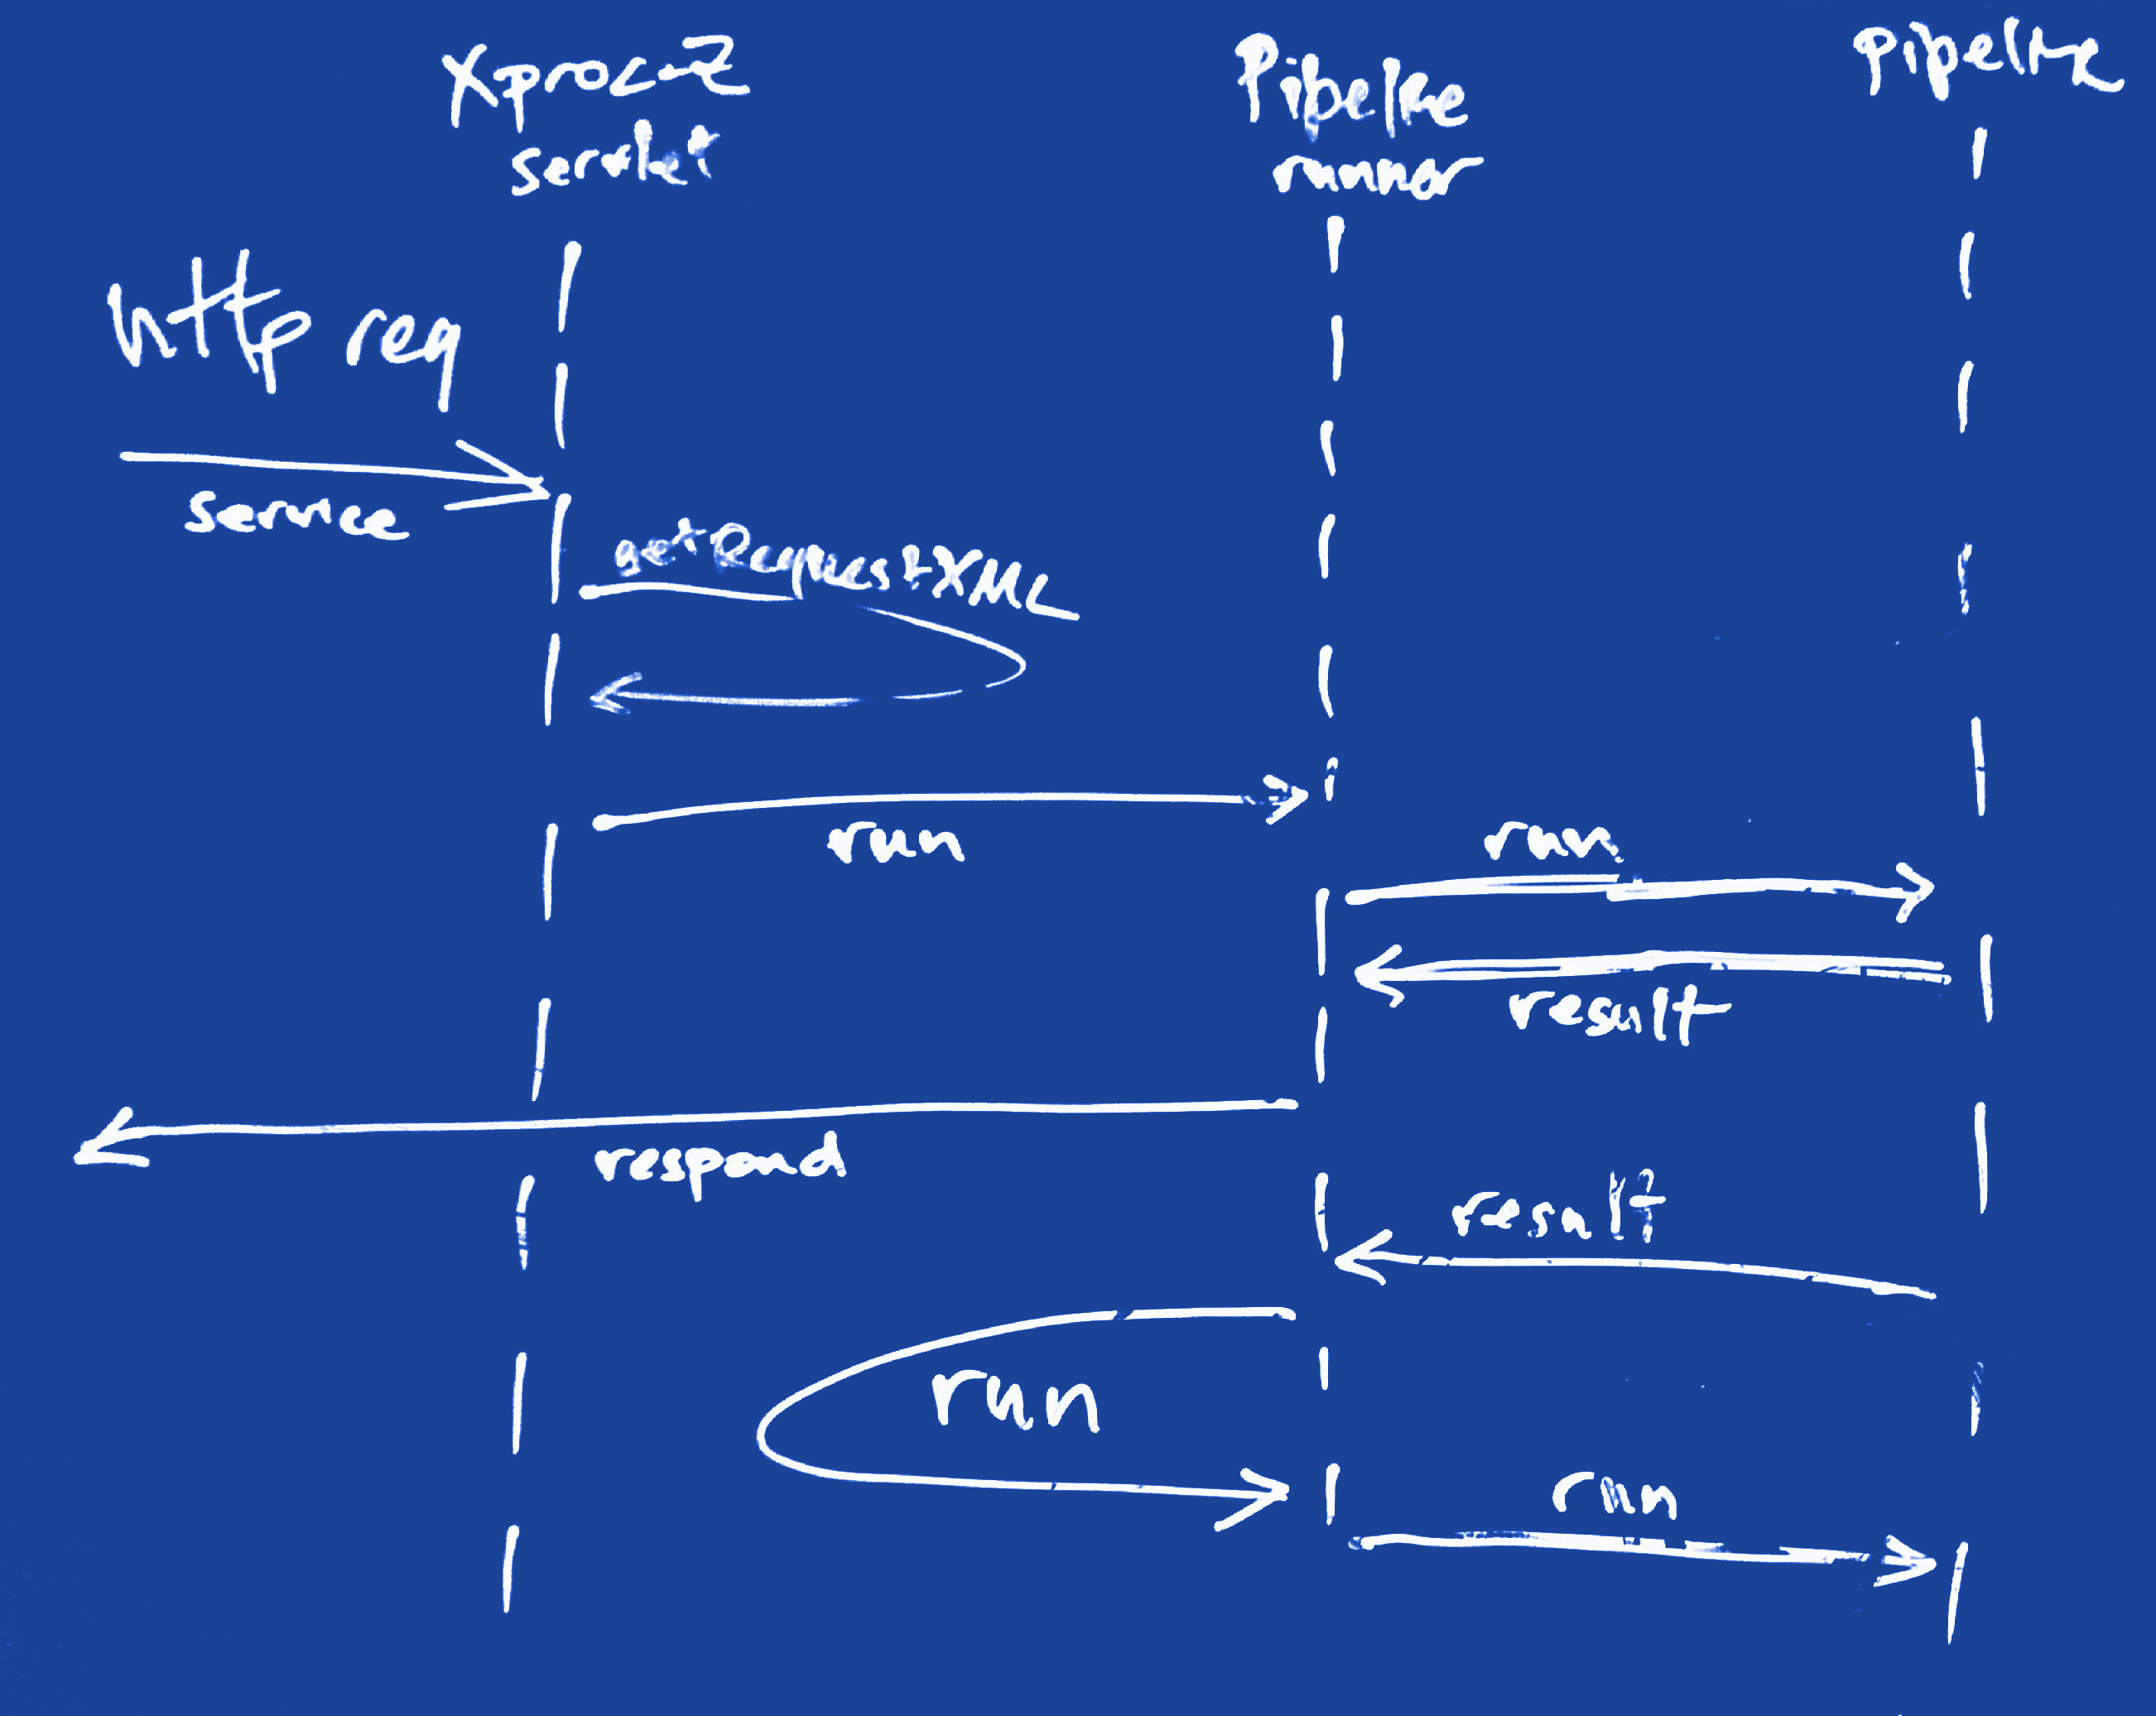 UML Sequence Diagram of XProc-Z Trampoline